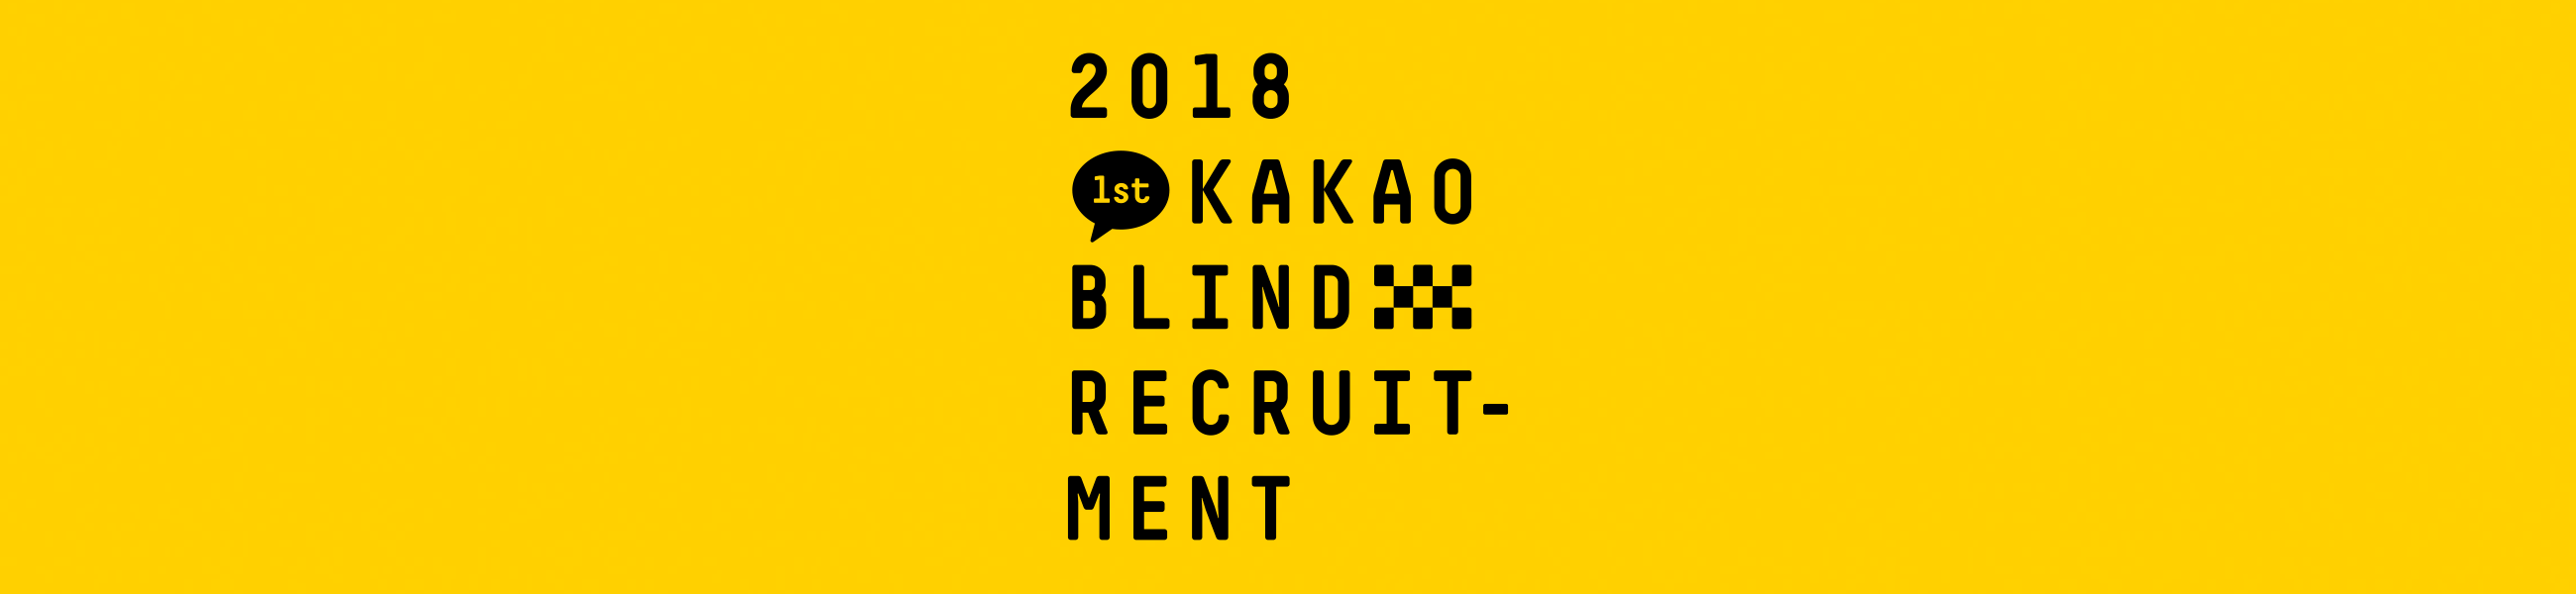 2018 1ST KAKAO BLIND RECRUITMENT의 이미지